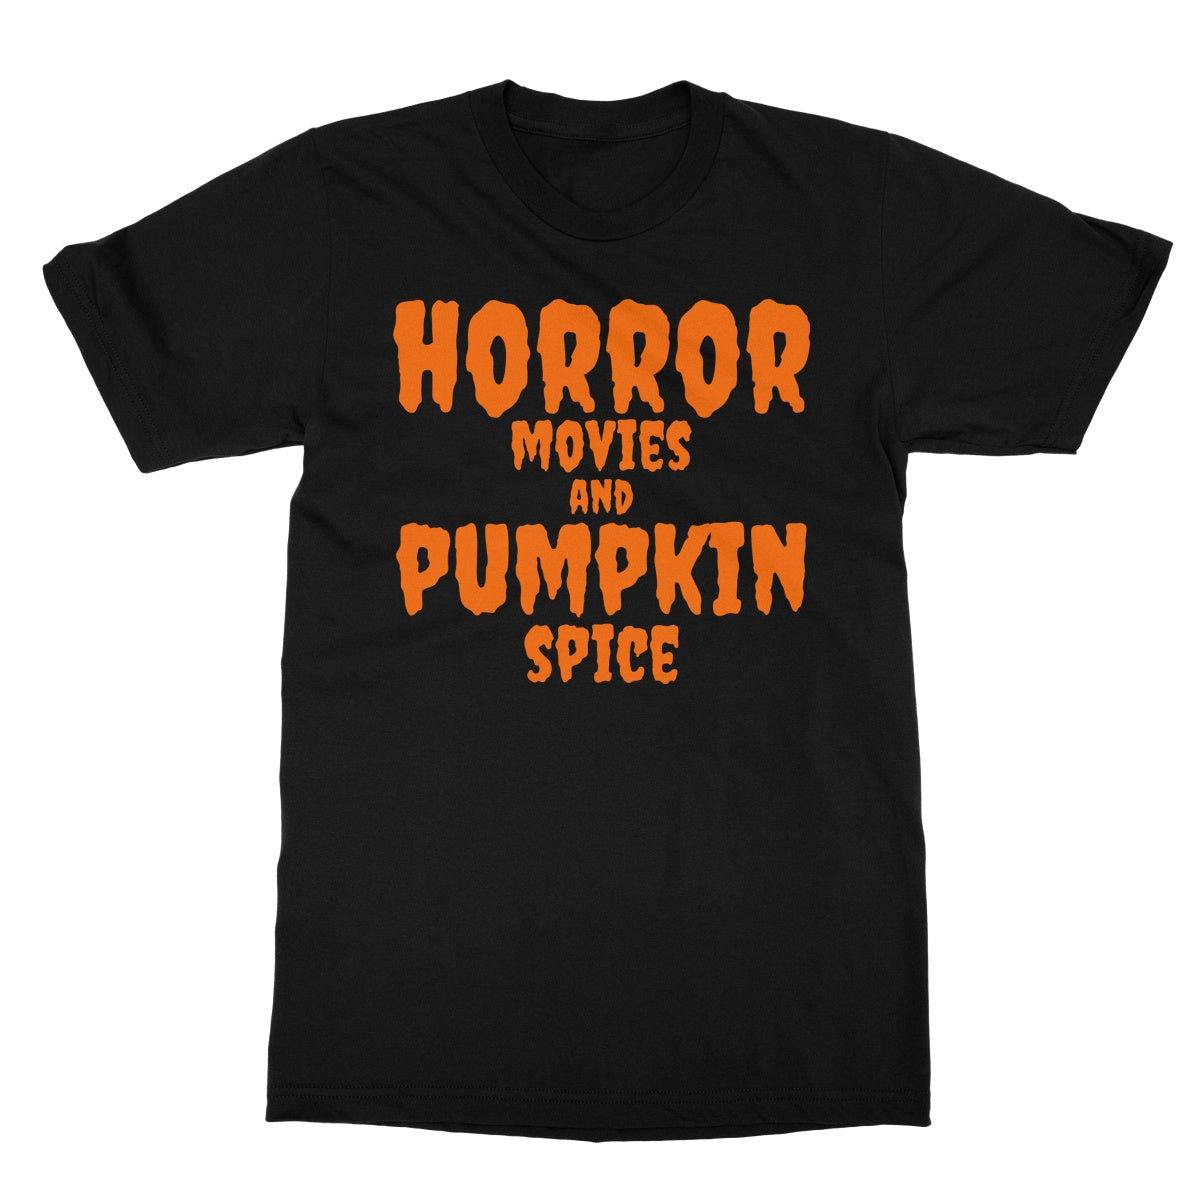 Halloween Apparel - Horror Movies and Pumpkin Spice  Softstyle T-Shirt